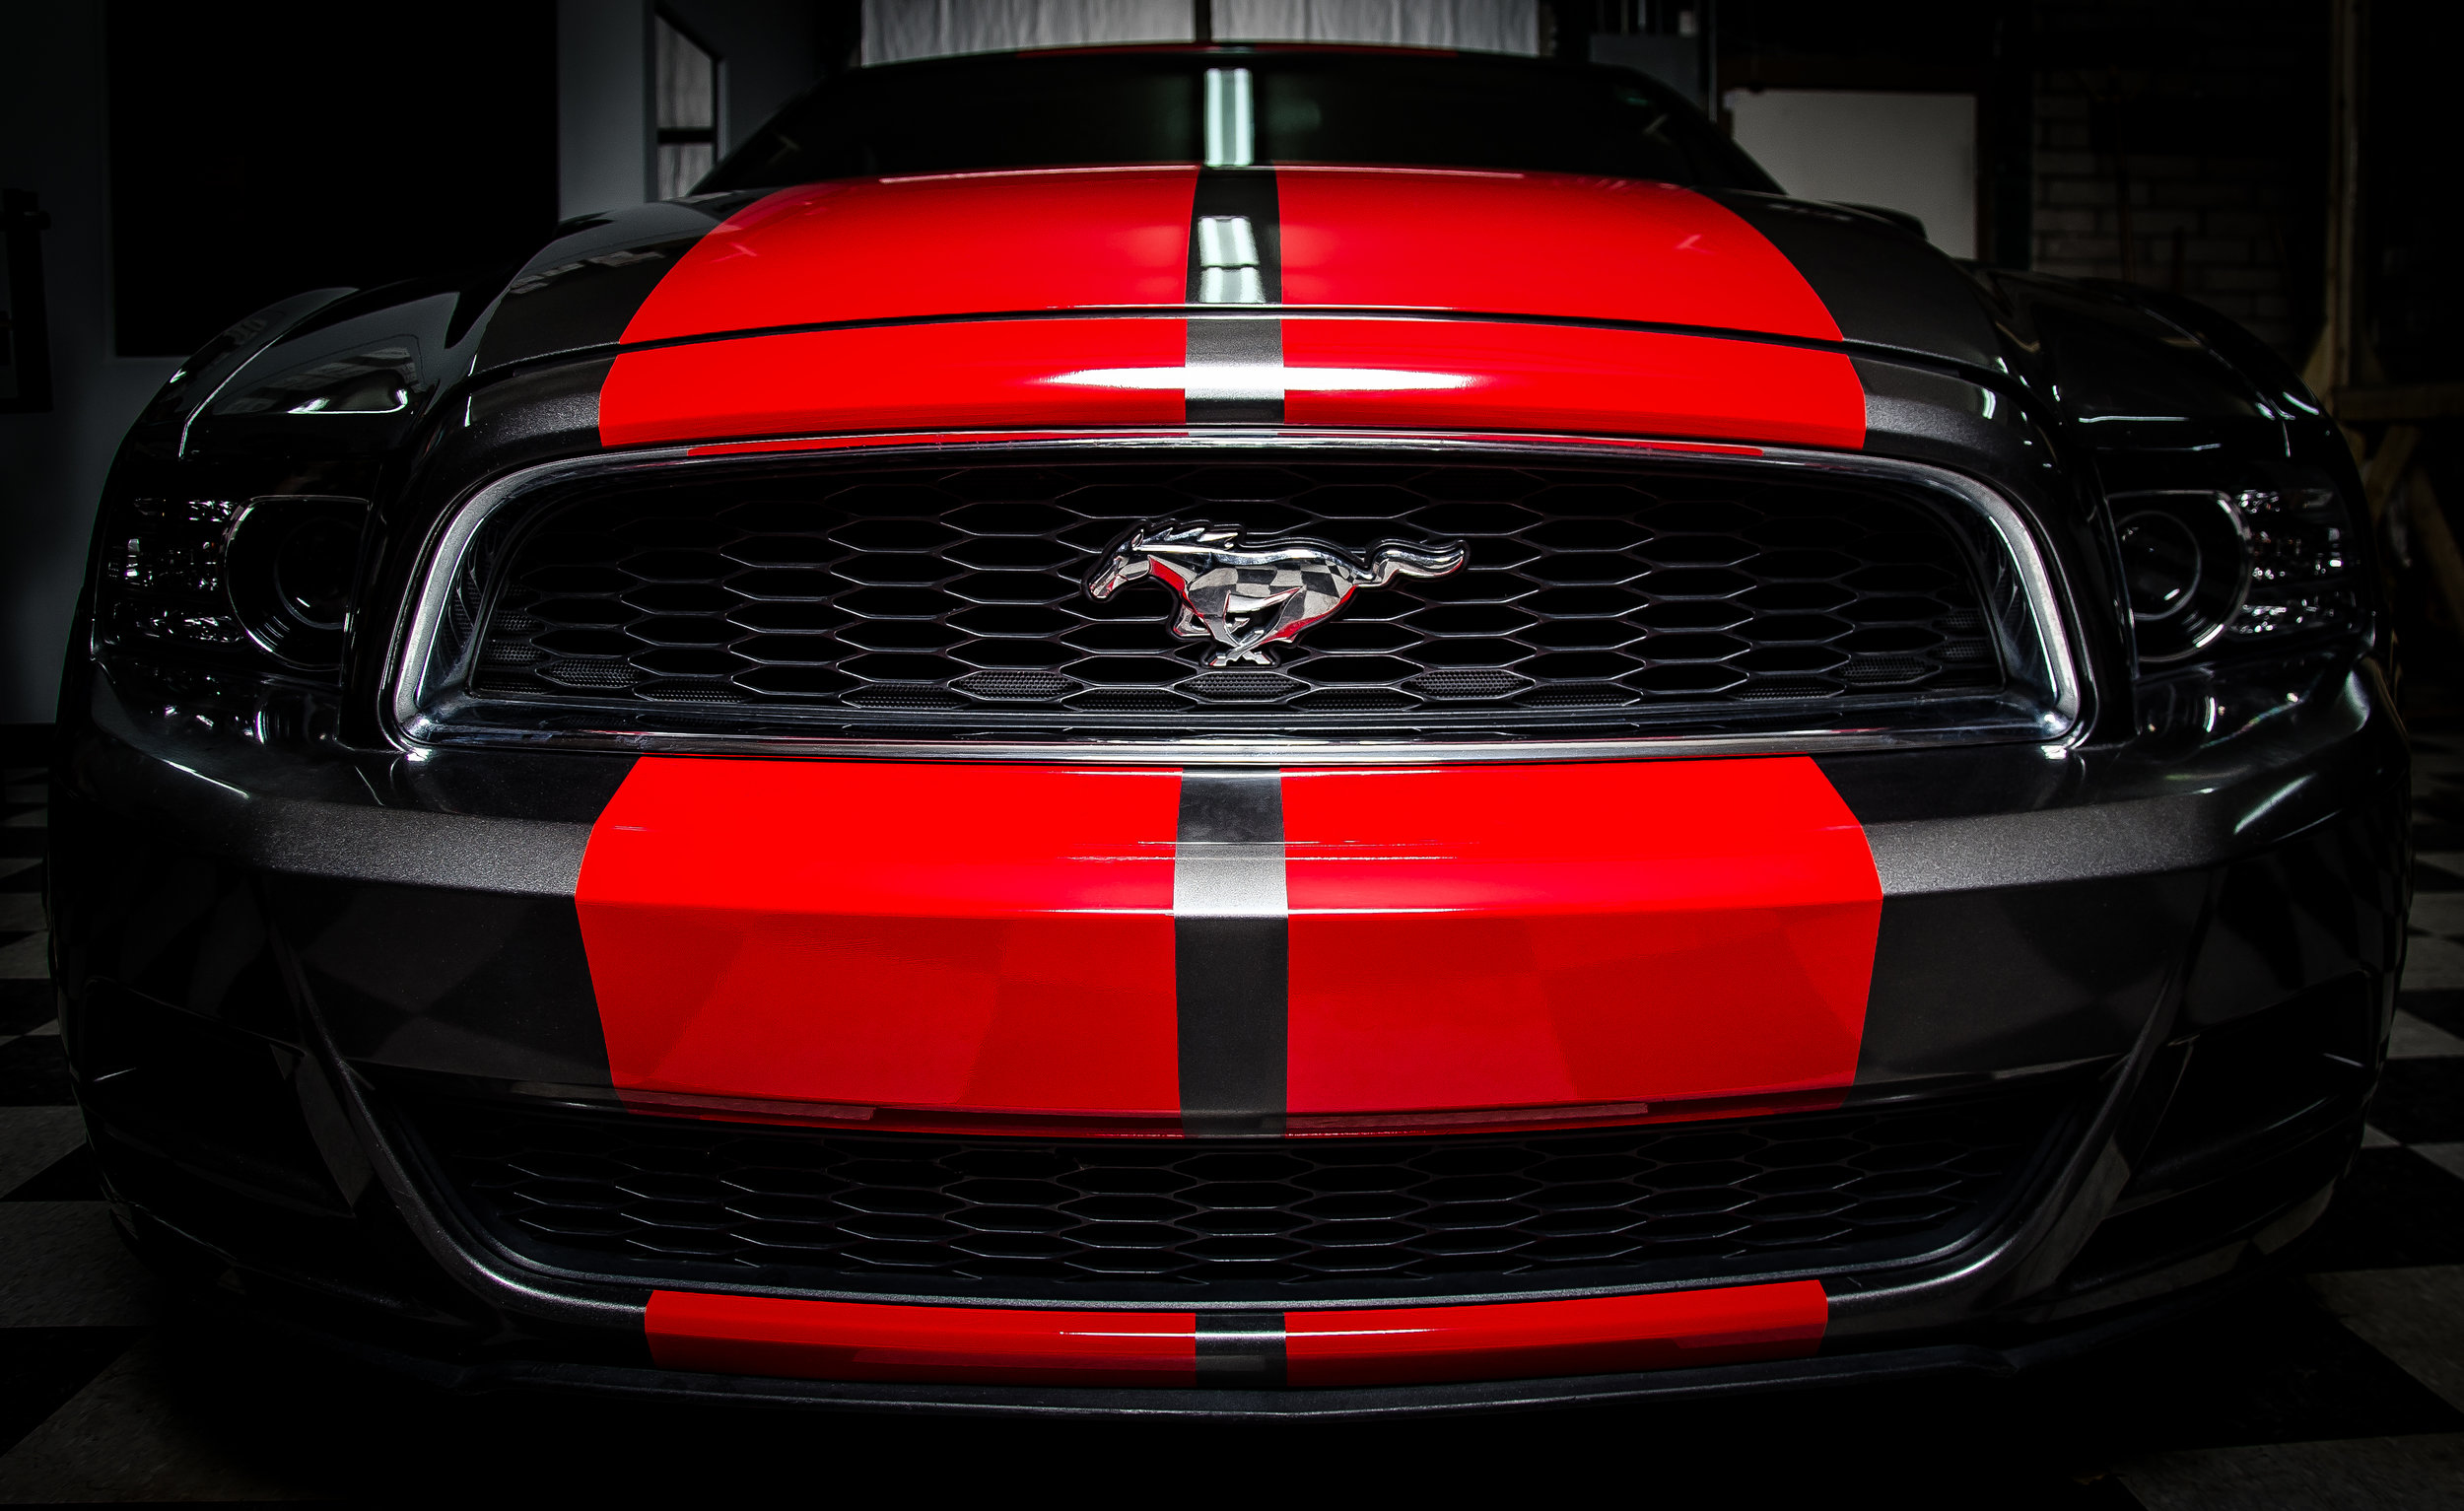 Ford Mustang red racing stripes